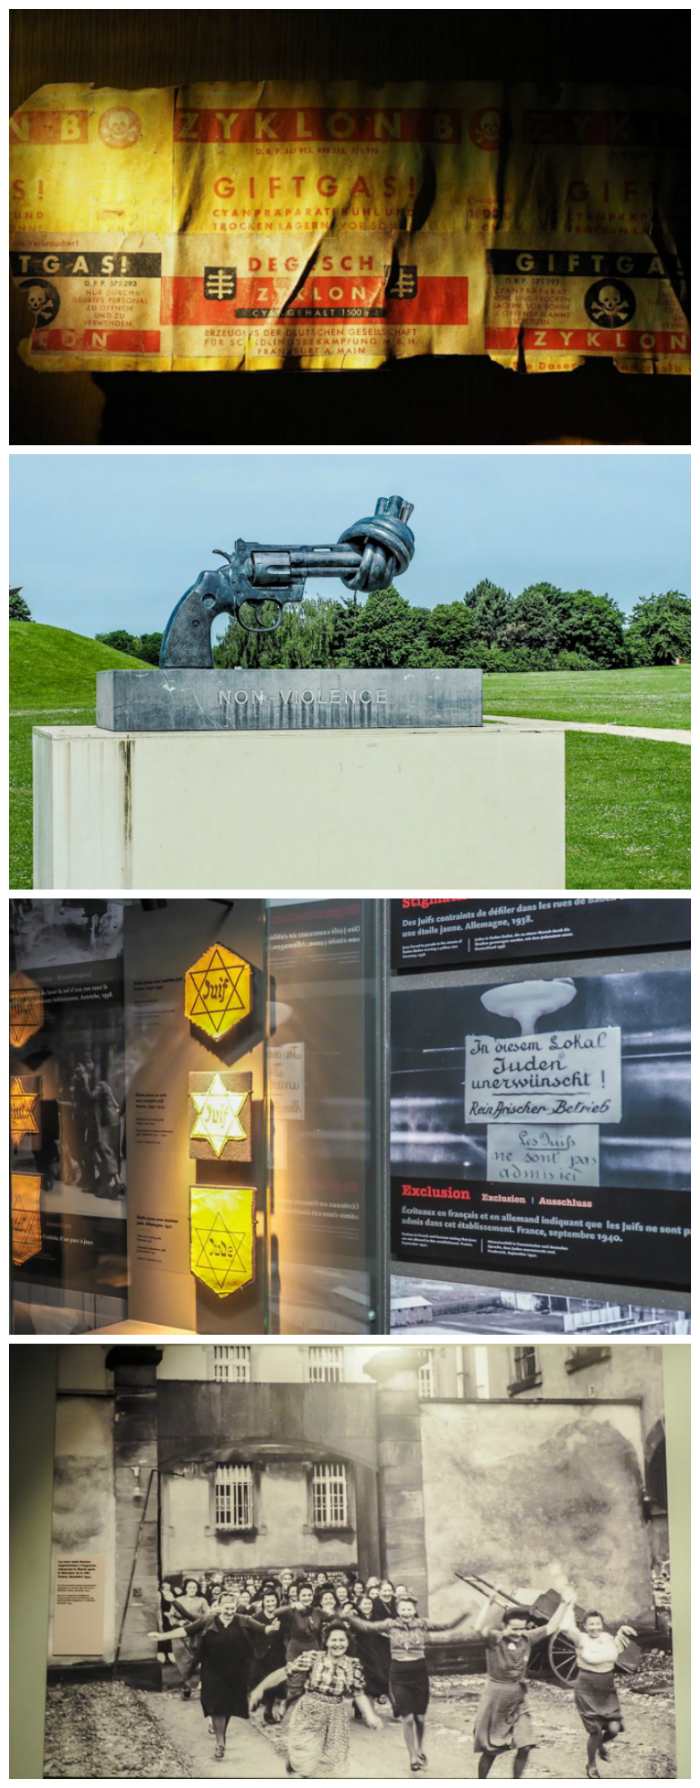 non-violence statue, xyklon b, liberation photo on display at Caen Memorial Museum | 7 of the Best D-Day Sites to Visit in Normandy If You Have Just 1 Day | Normandy, France WWII sites and World War II history | #wwii #normandy #dday #omahabeach